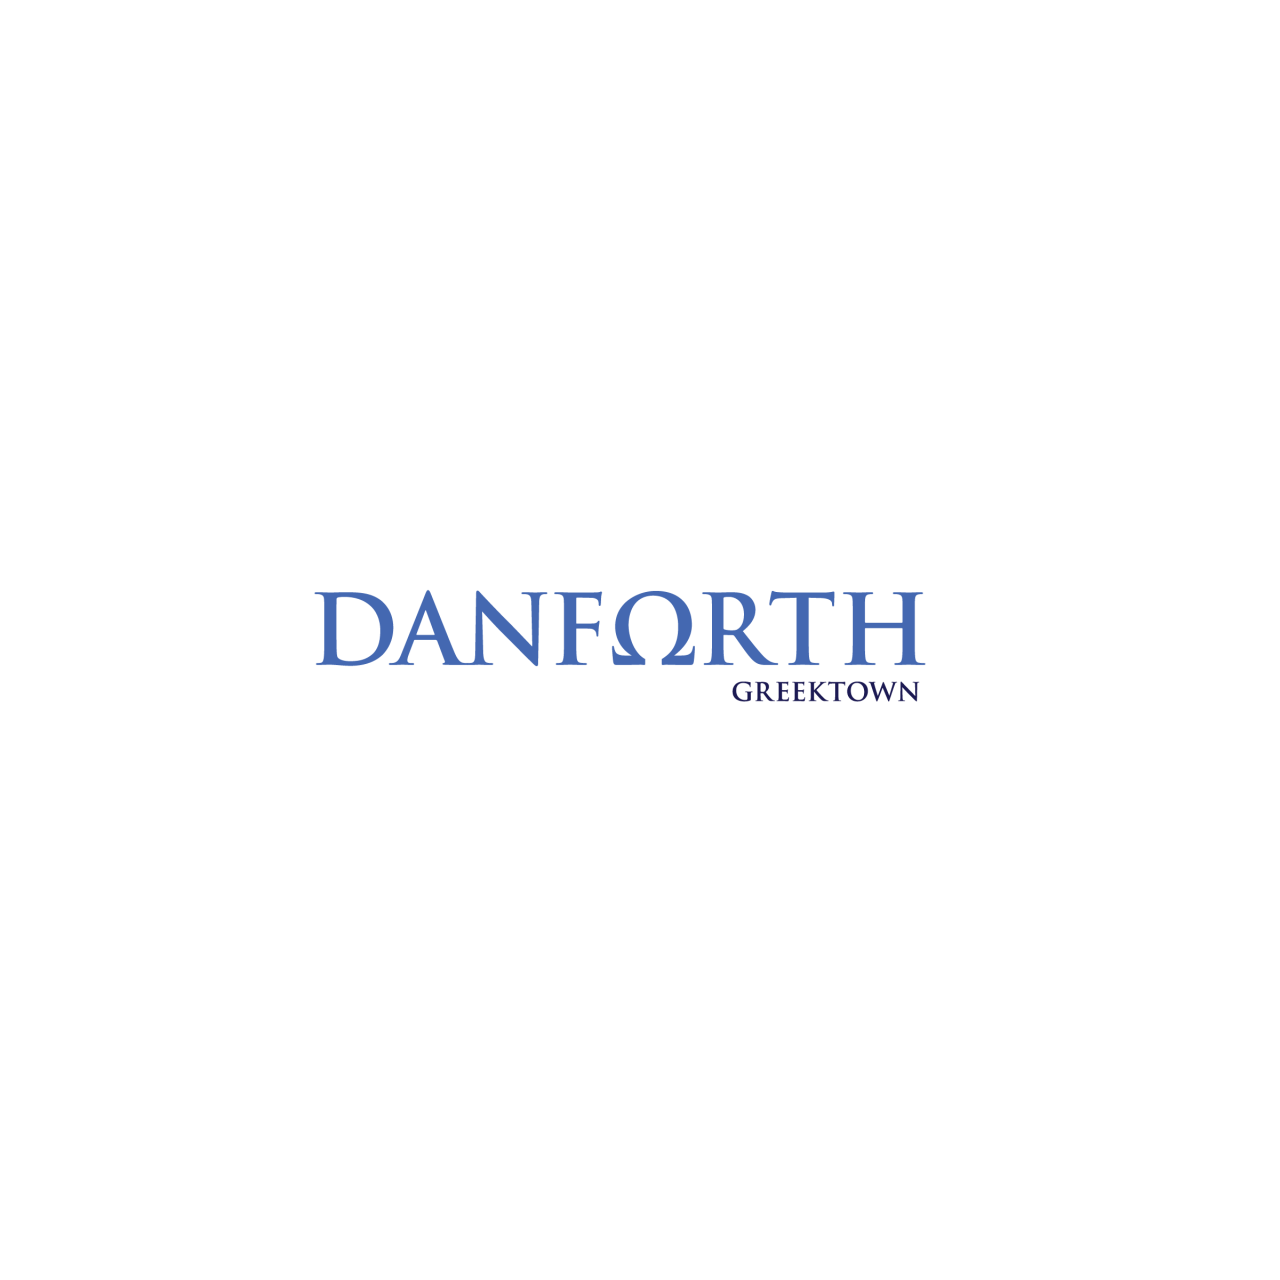 Image of Danforth Greektown logo